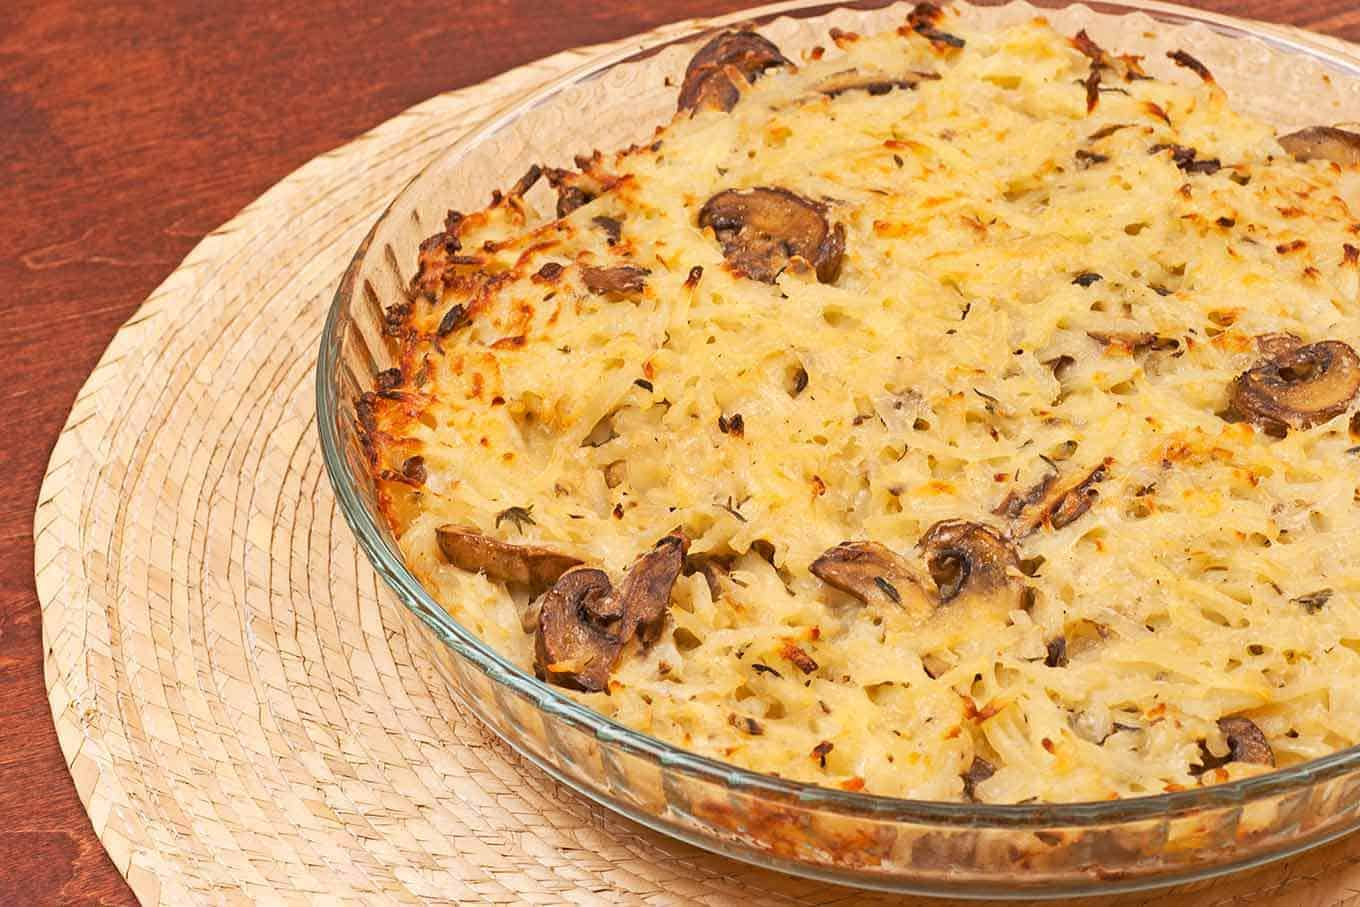 Shredded Potato And Mushroom Casserole Recipe